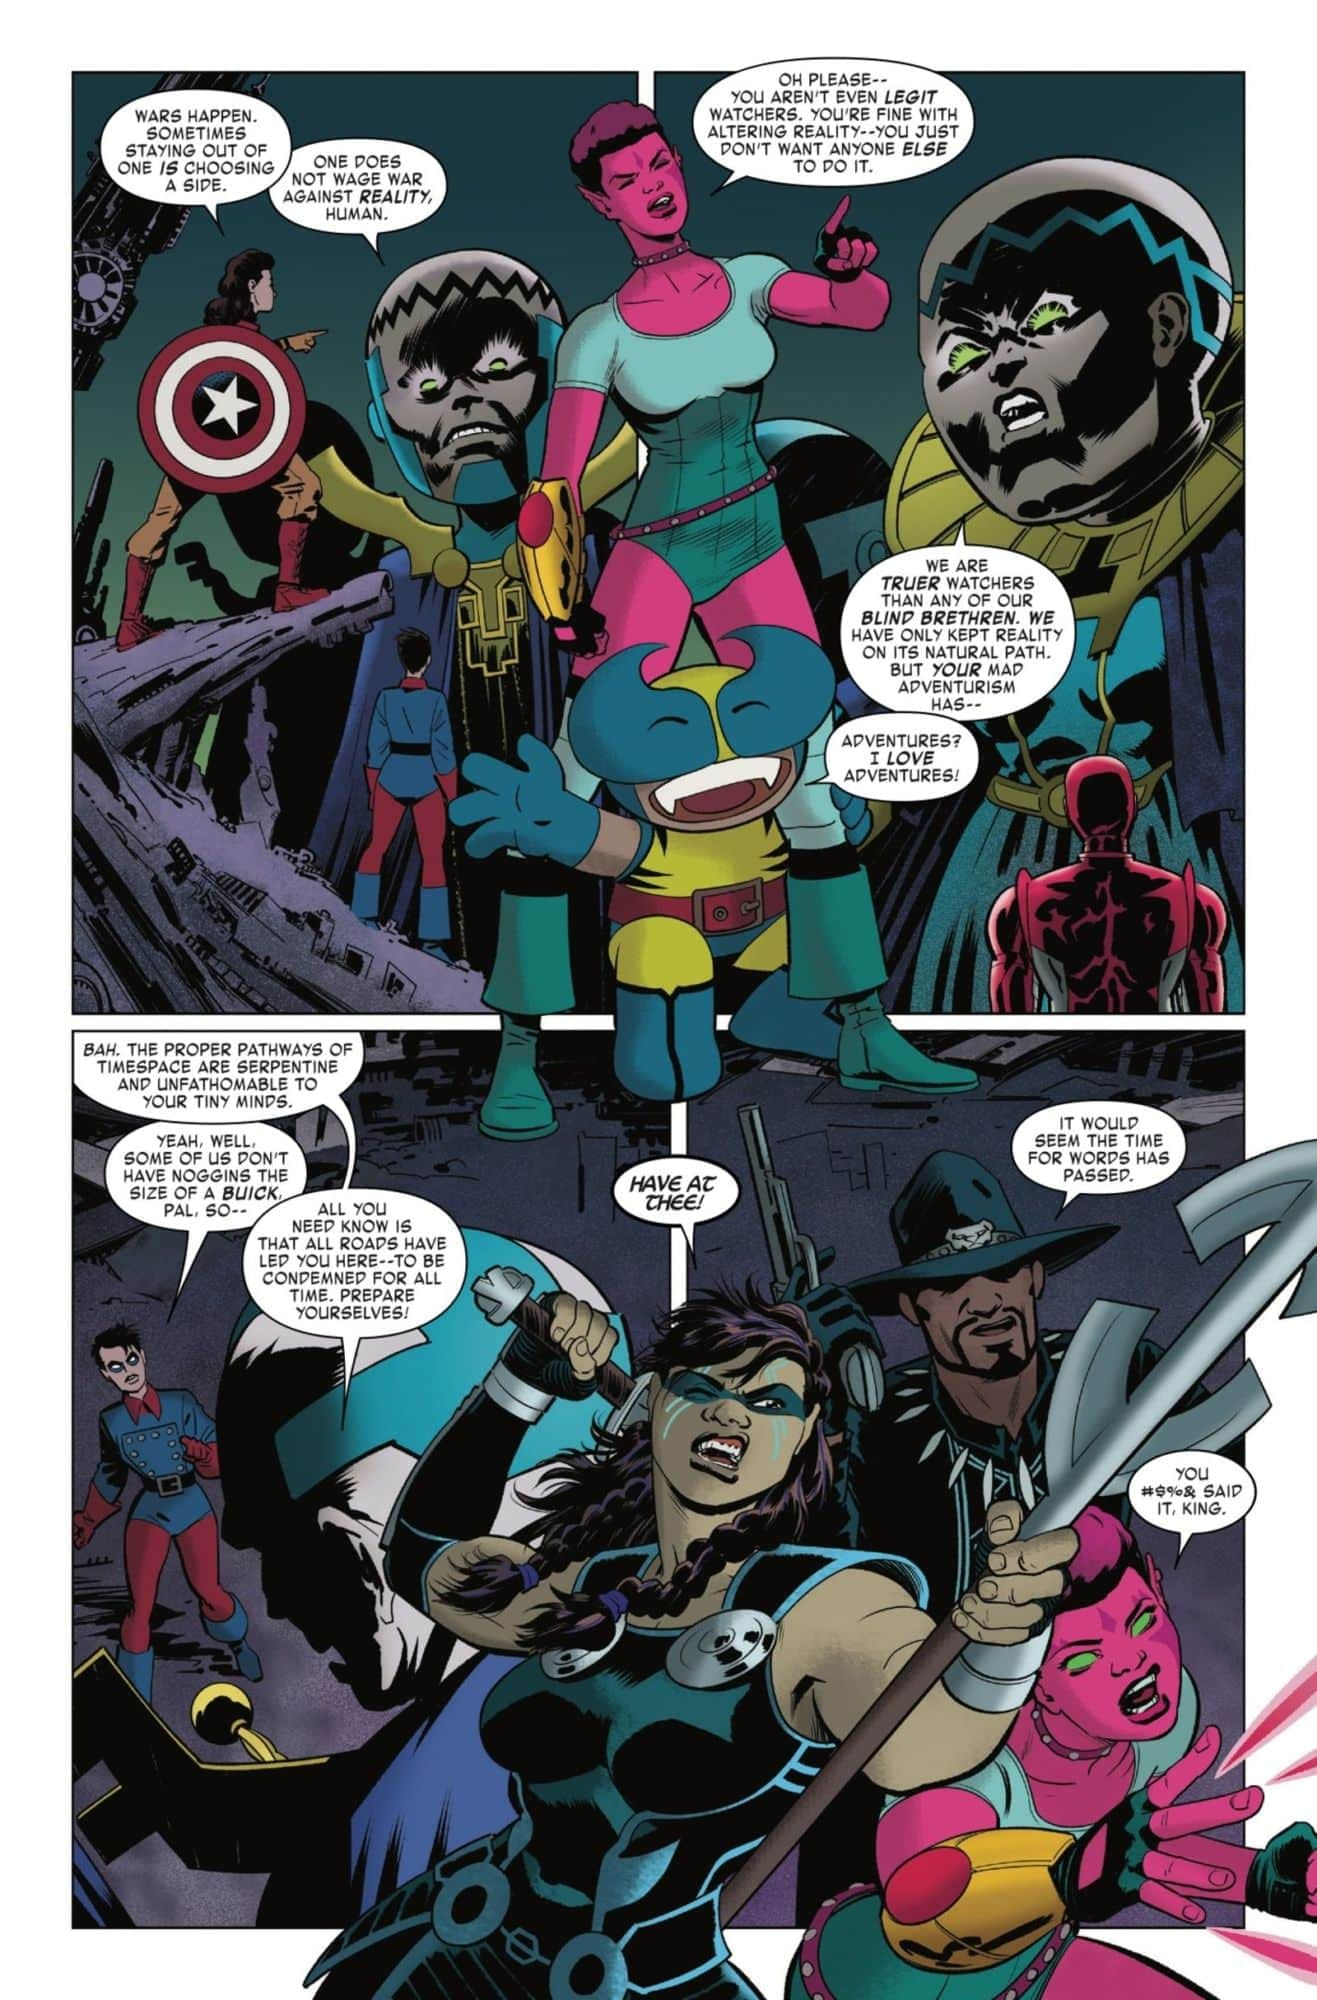 Head-Shaming the Watchers in Next Week's Exiles Finale